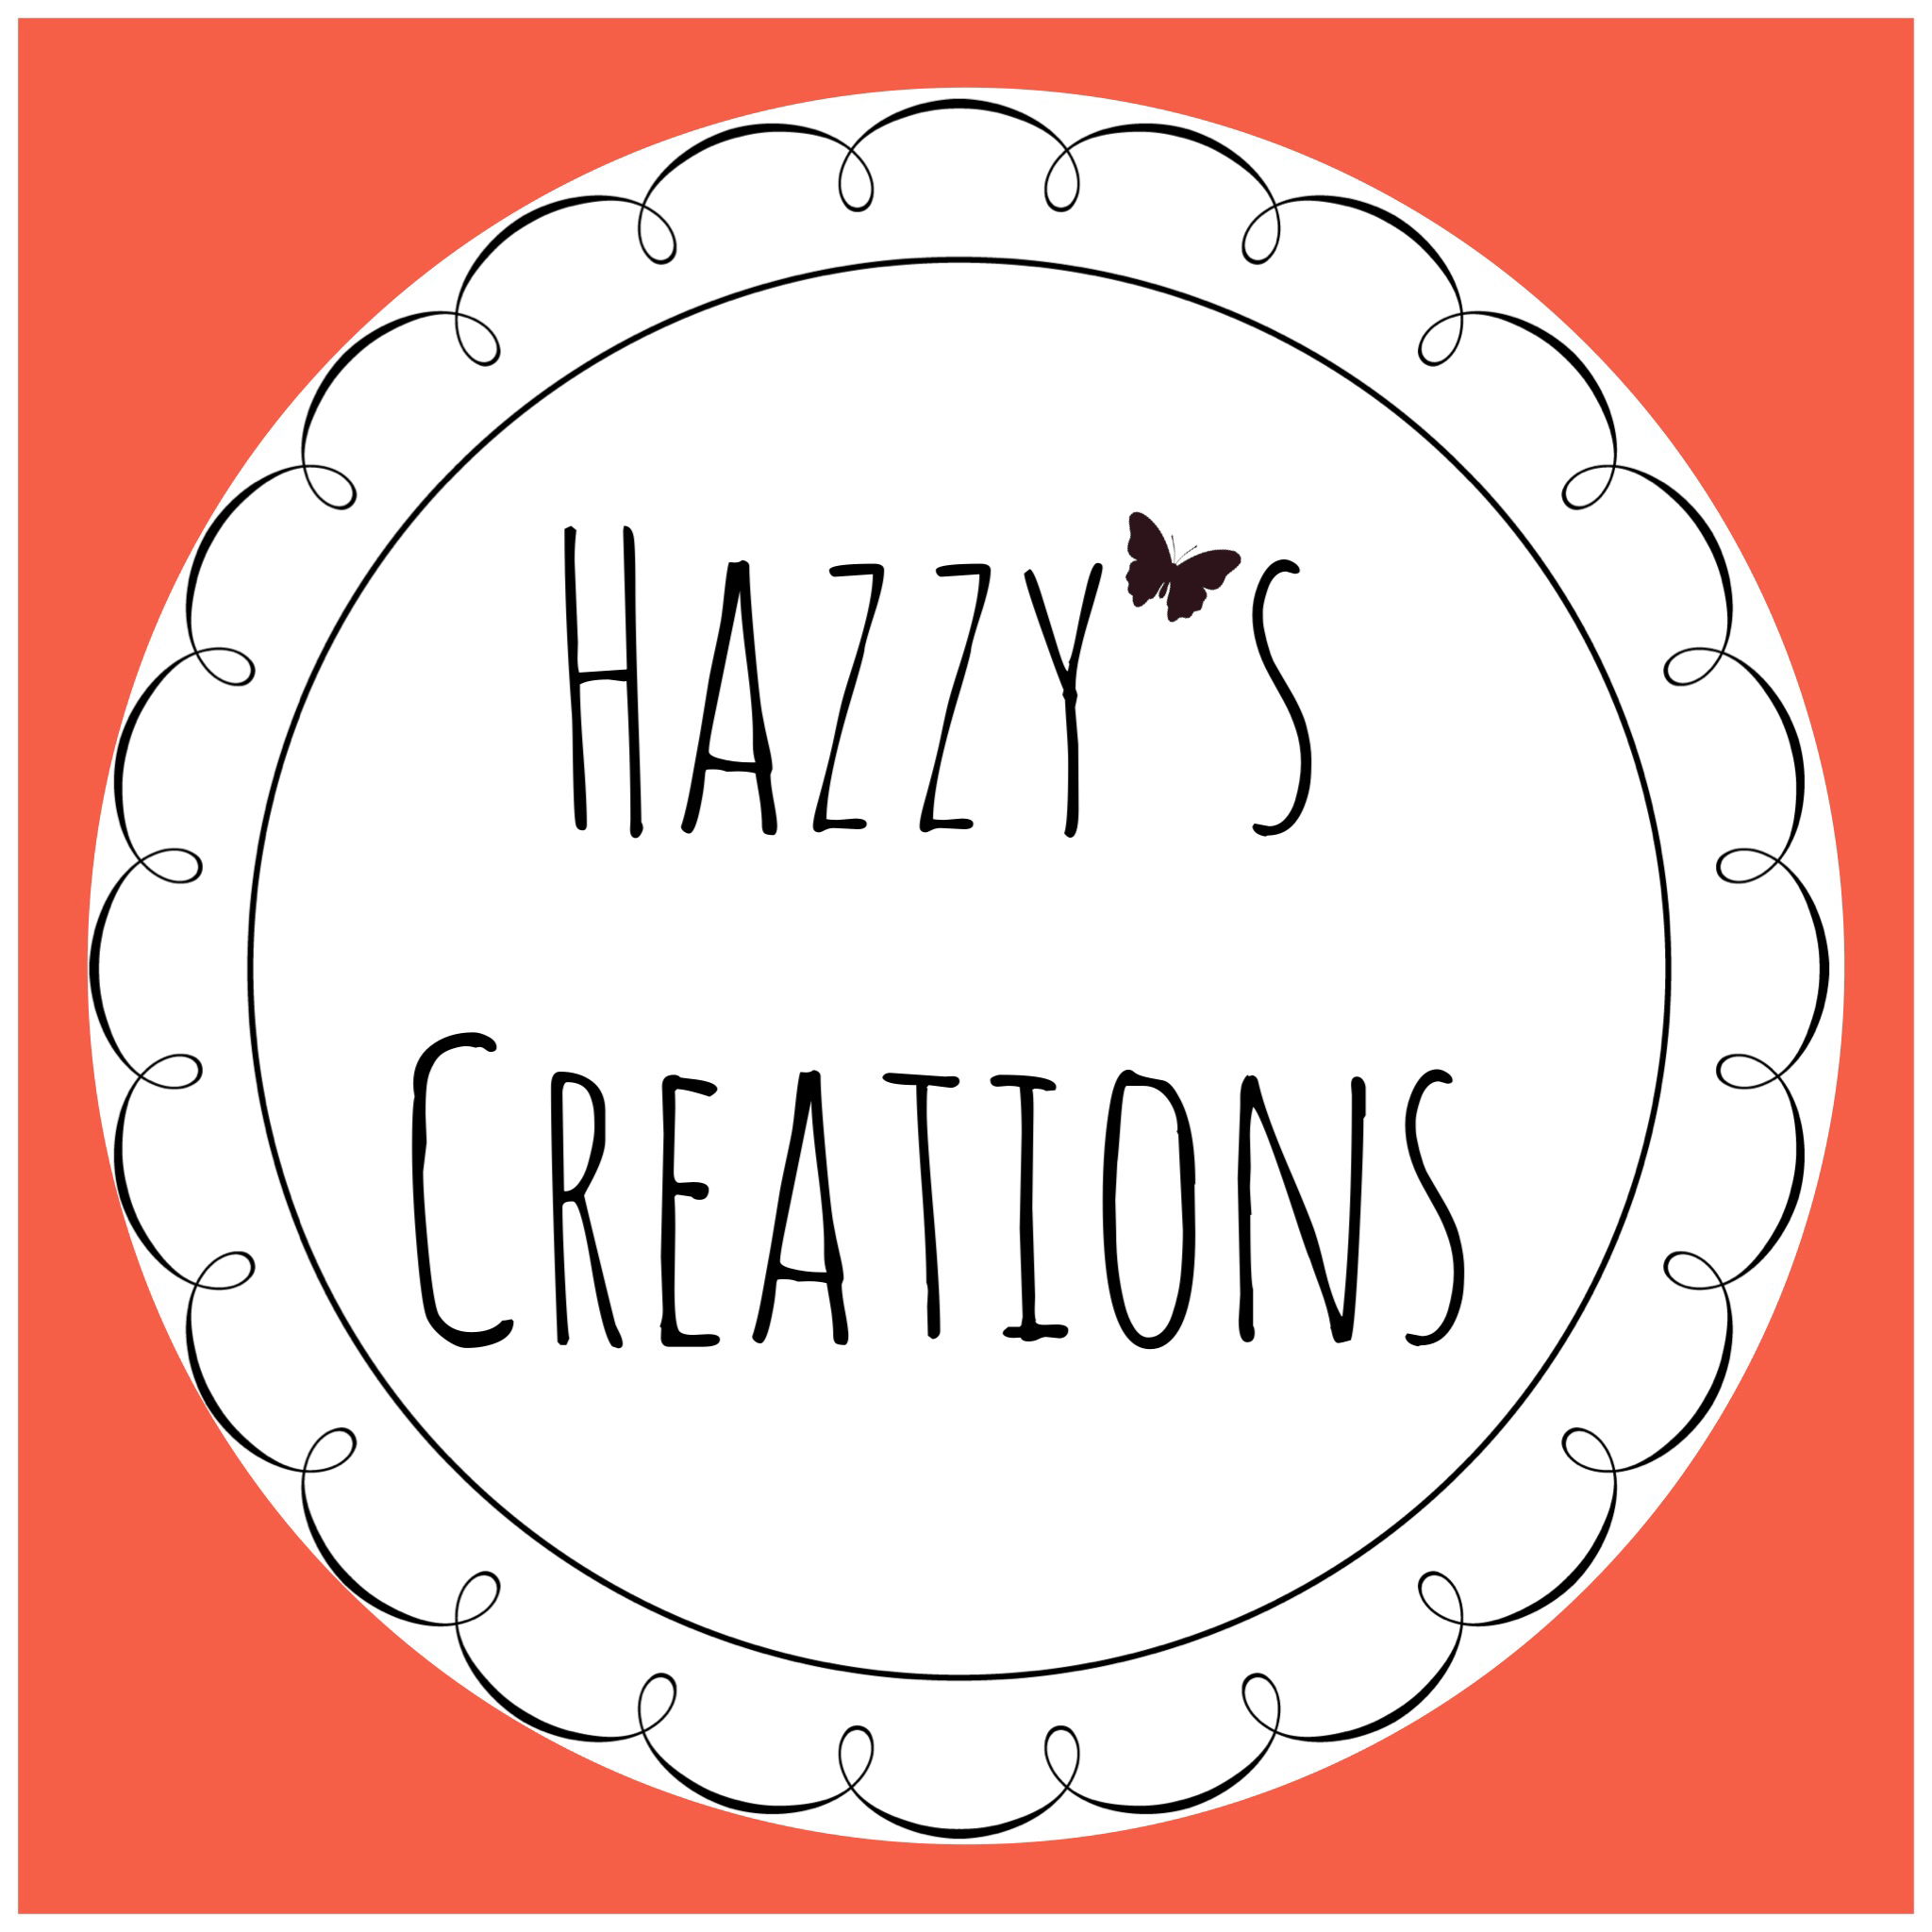 Hazzy's Creations Logo 1 peach